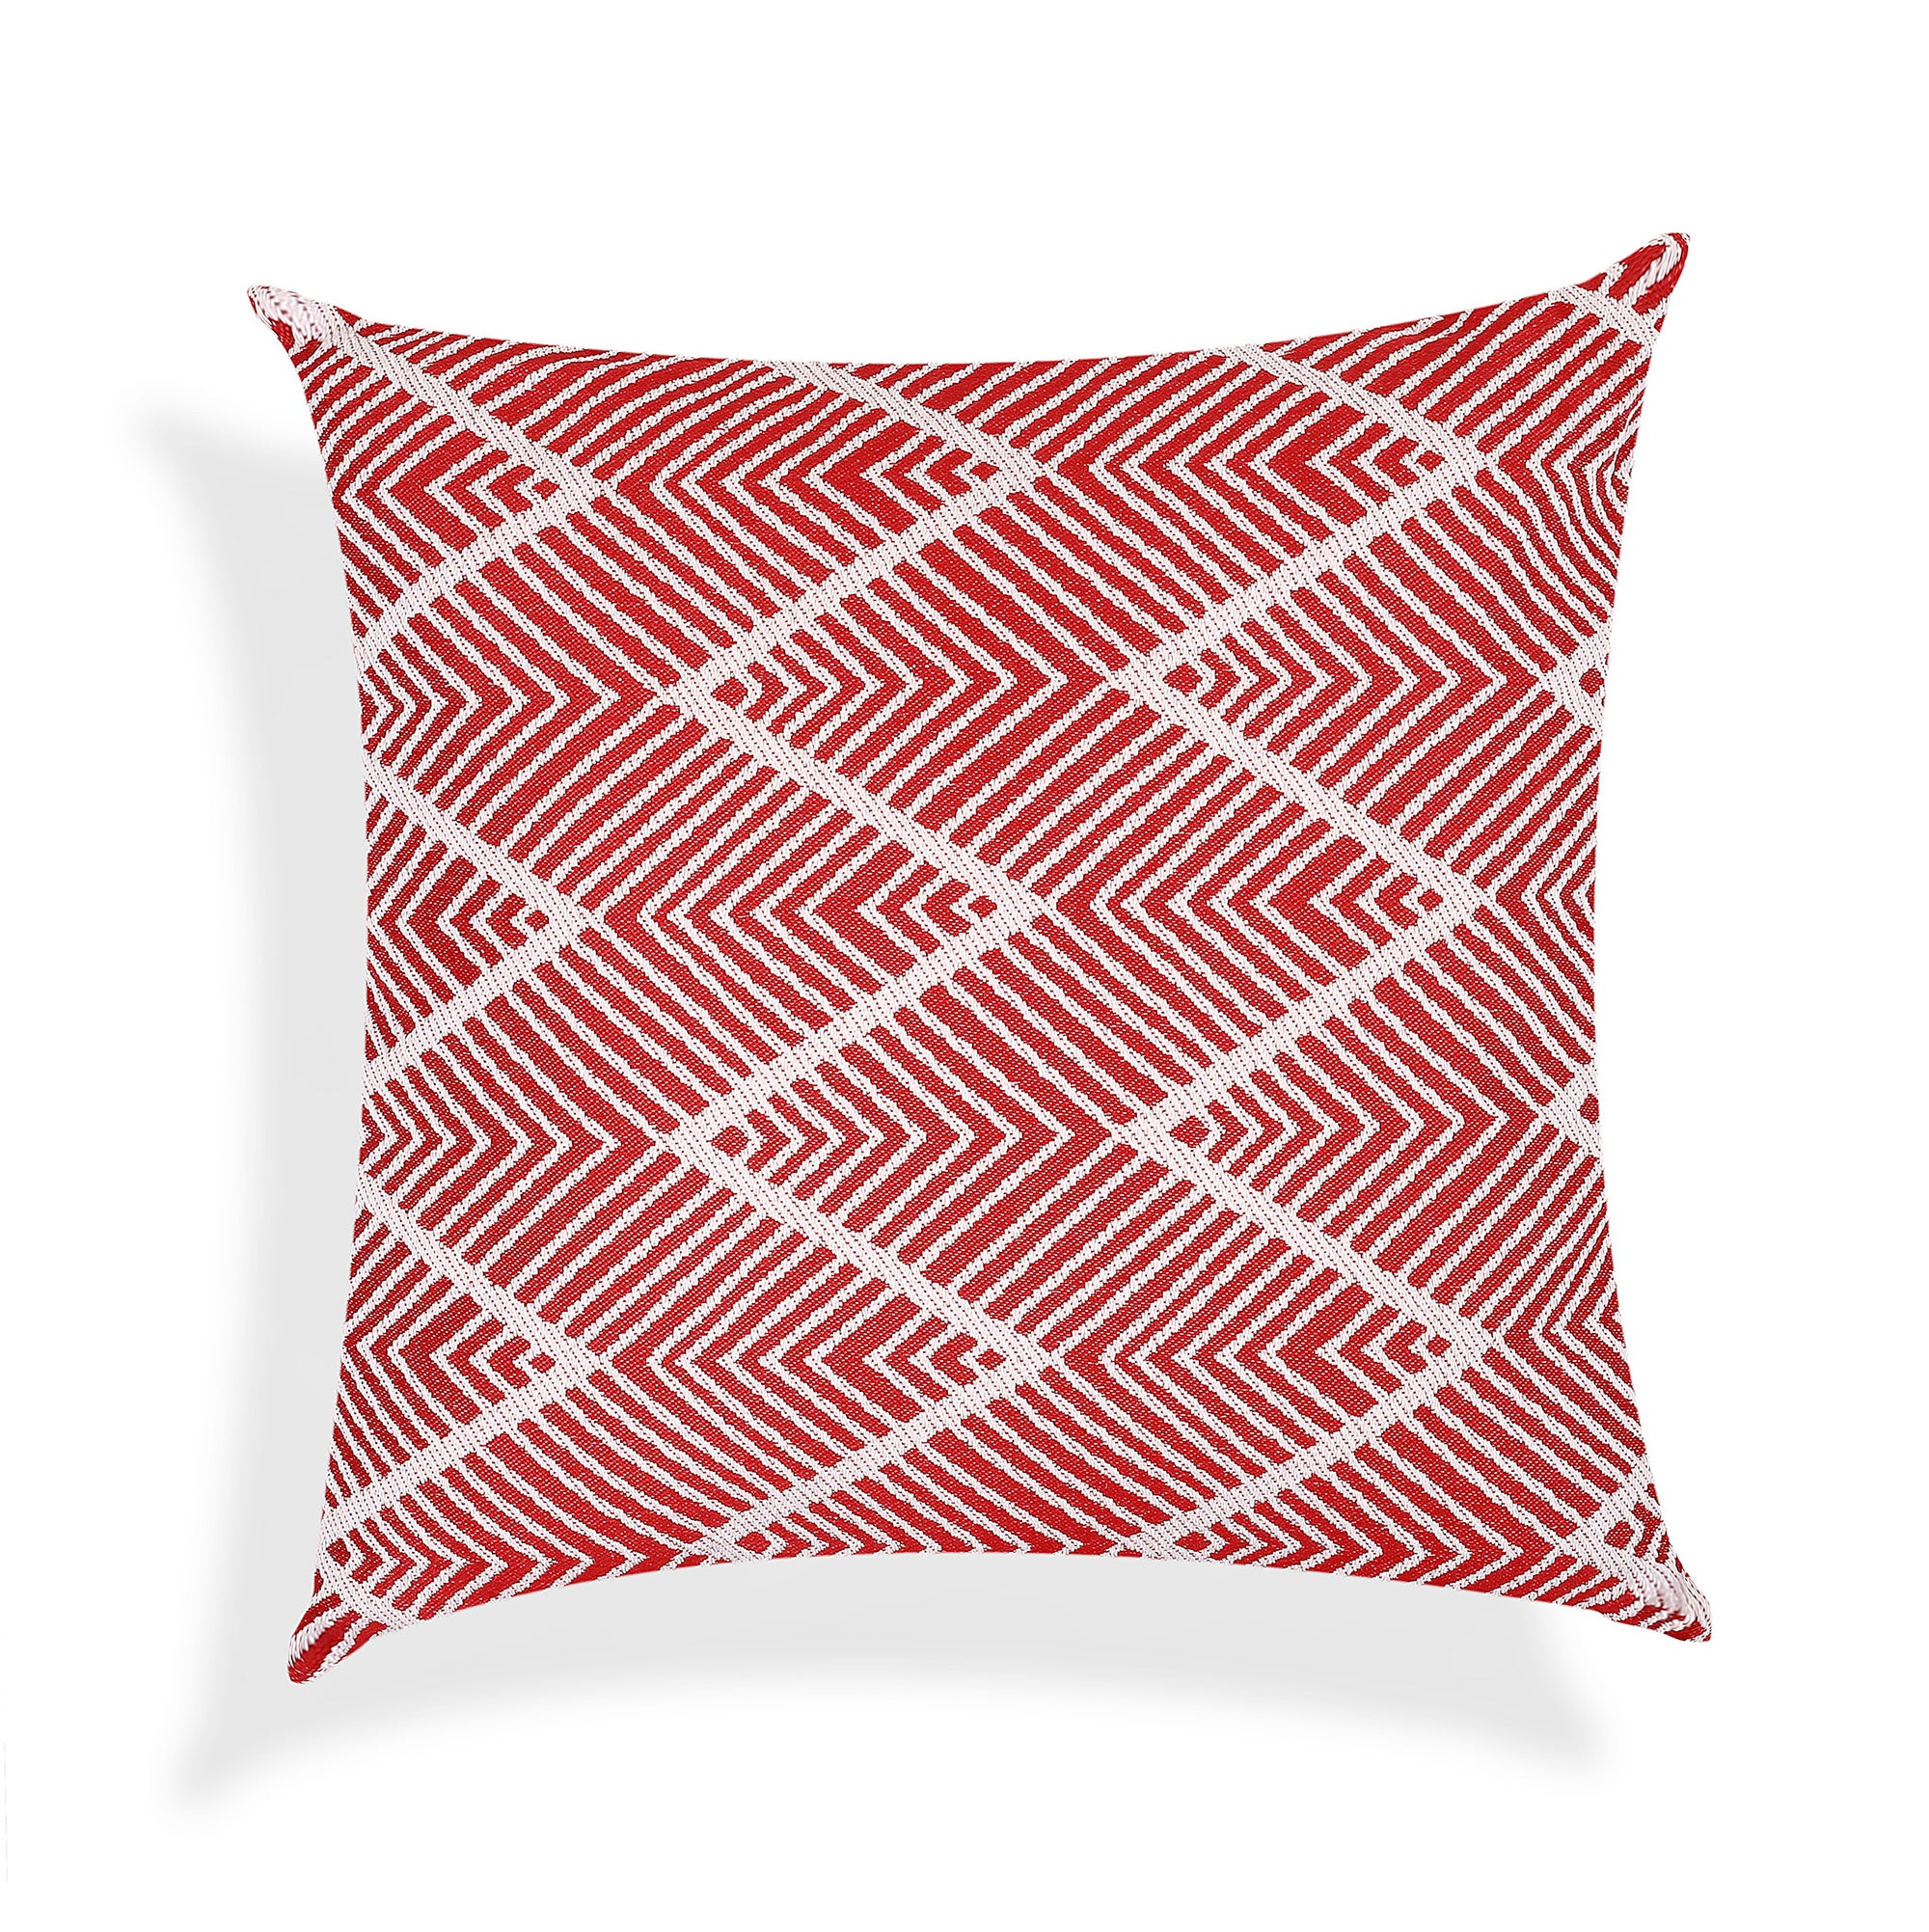 Red Z Design Beige Cushion Cover